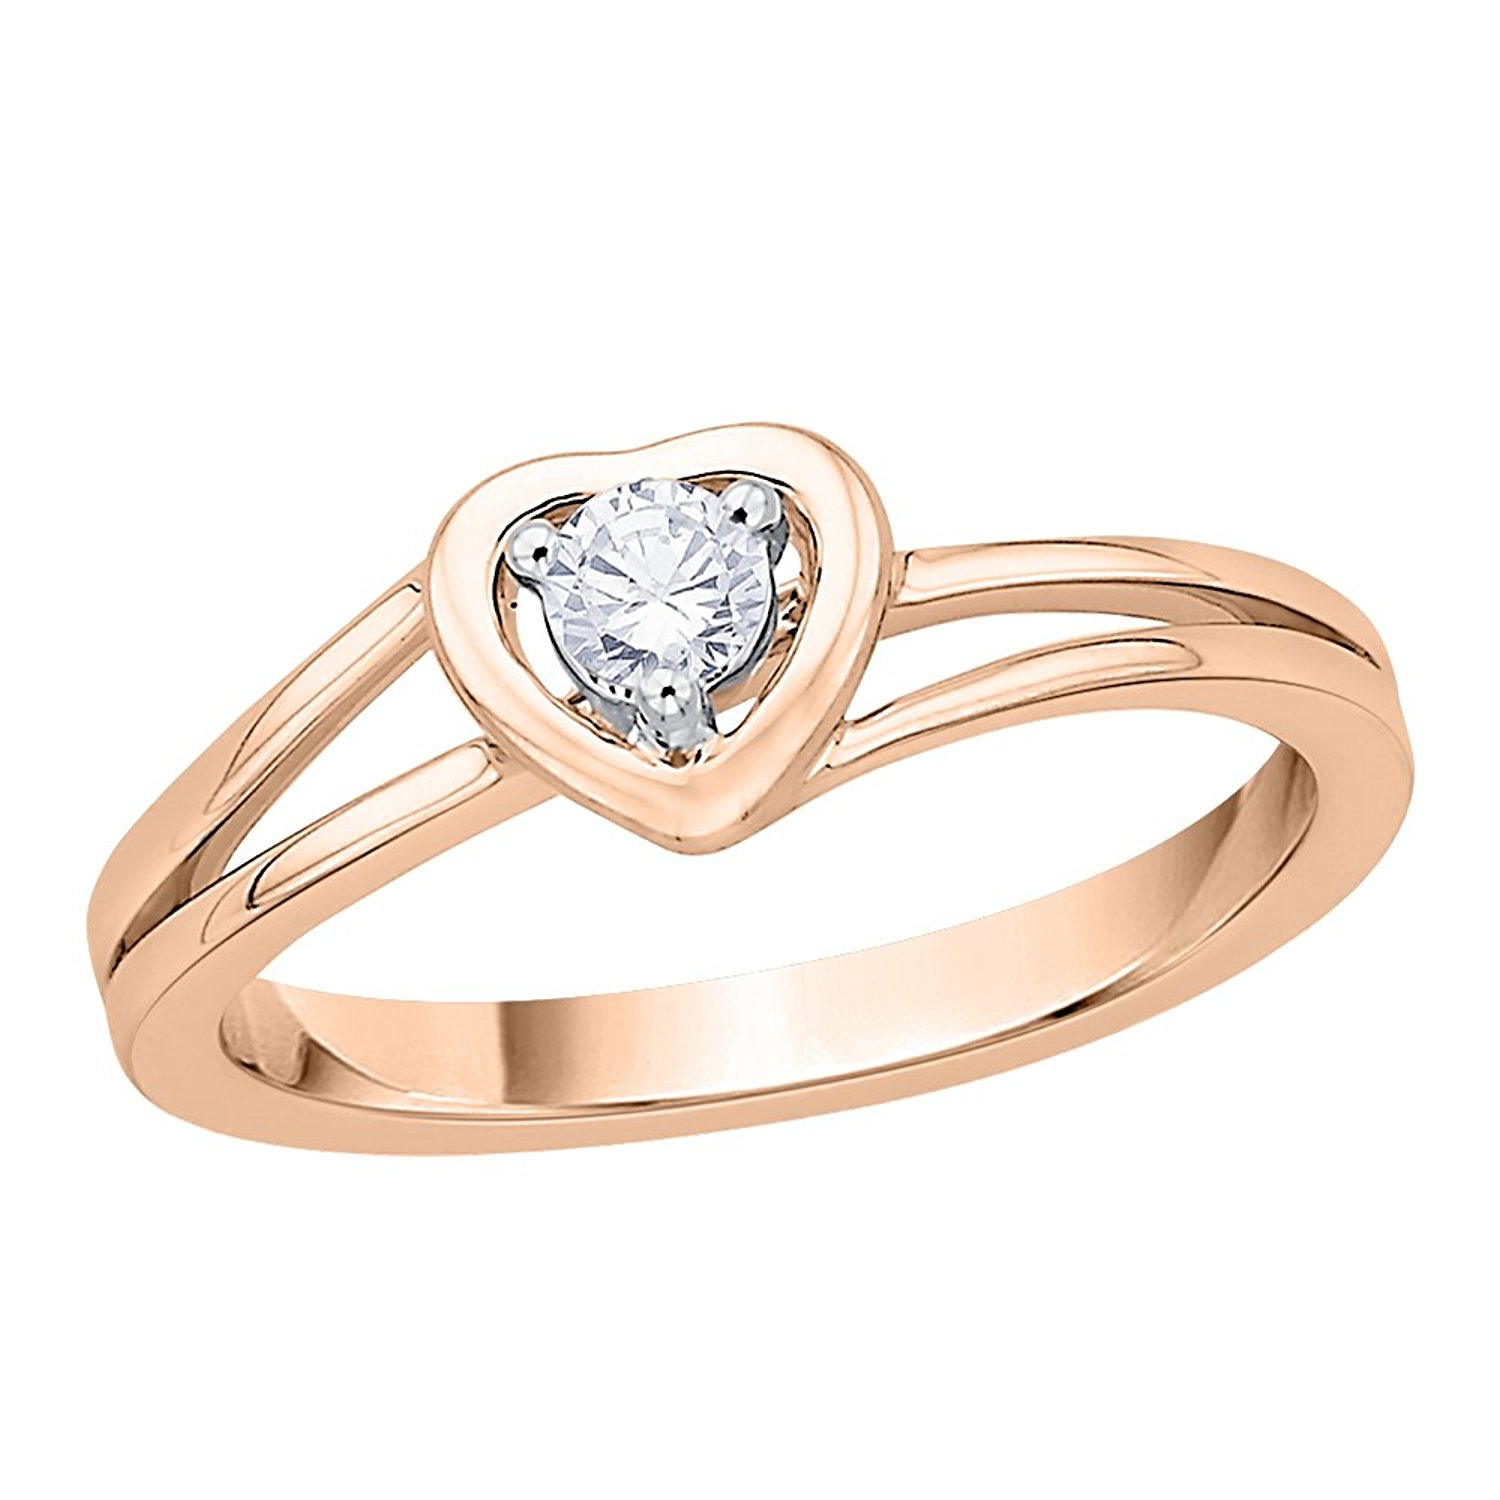 Size-10.25 1//8 cttw, G-H,I2-I3 Diamond Wedding Band in 14K Pink Gold